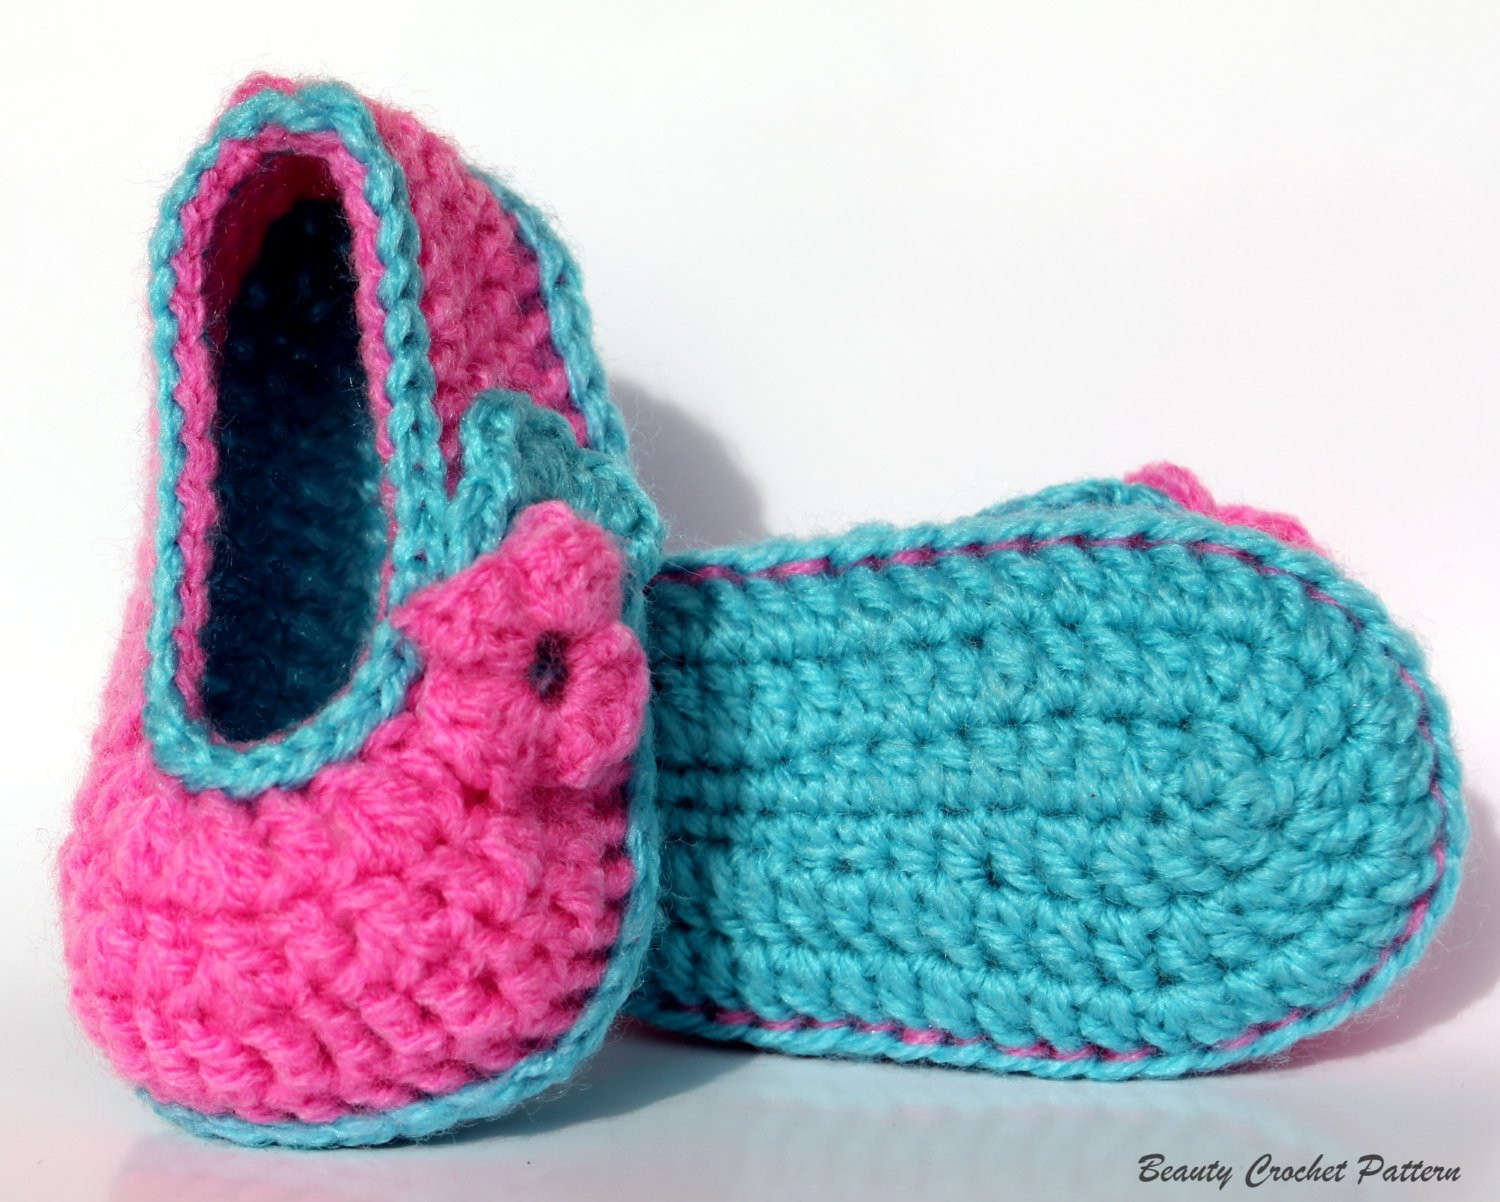 Crochet Baby Sneakers Inspirational Crochet Baby Pattern Barbie Style Shoes Baby Girl Crochet Of Superb 49 Images Crochet Baby Sneakers